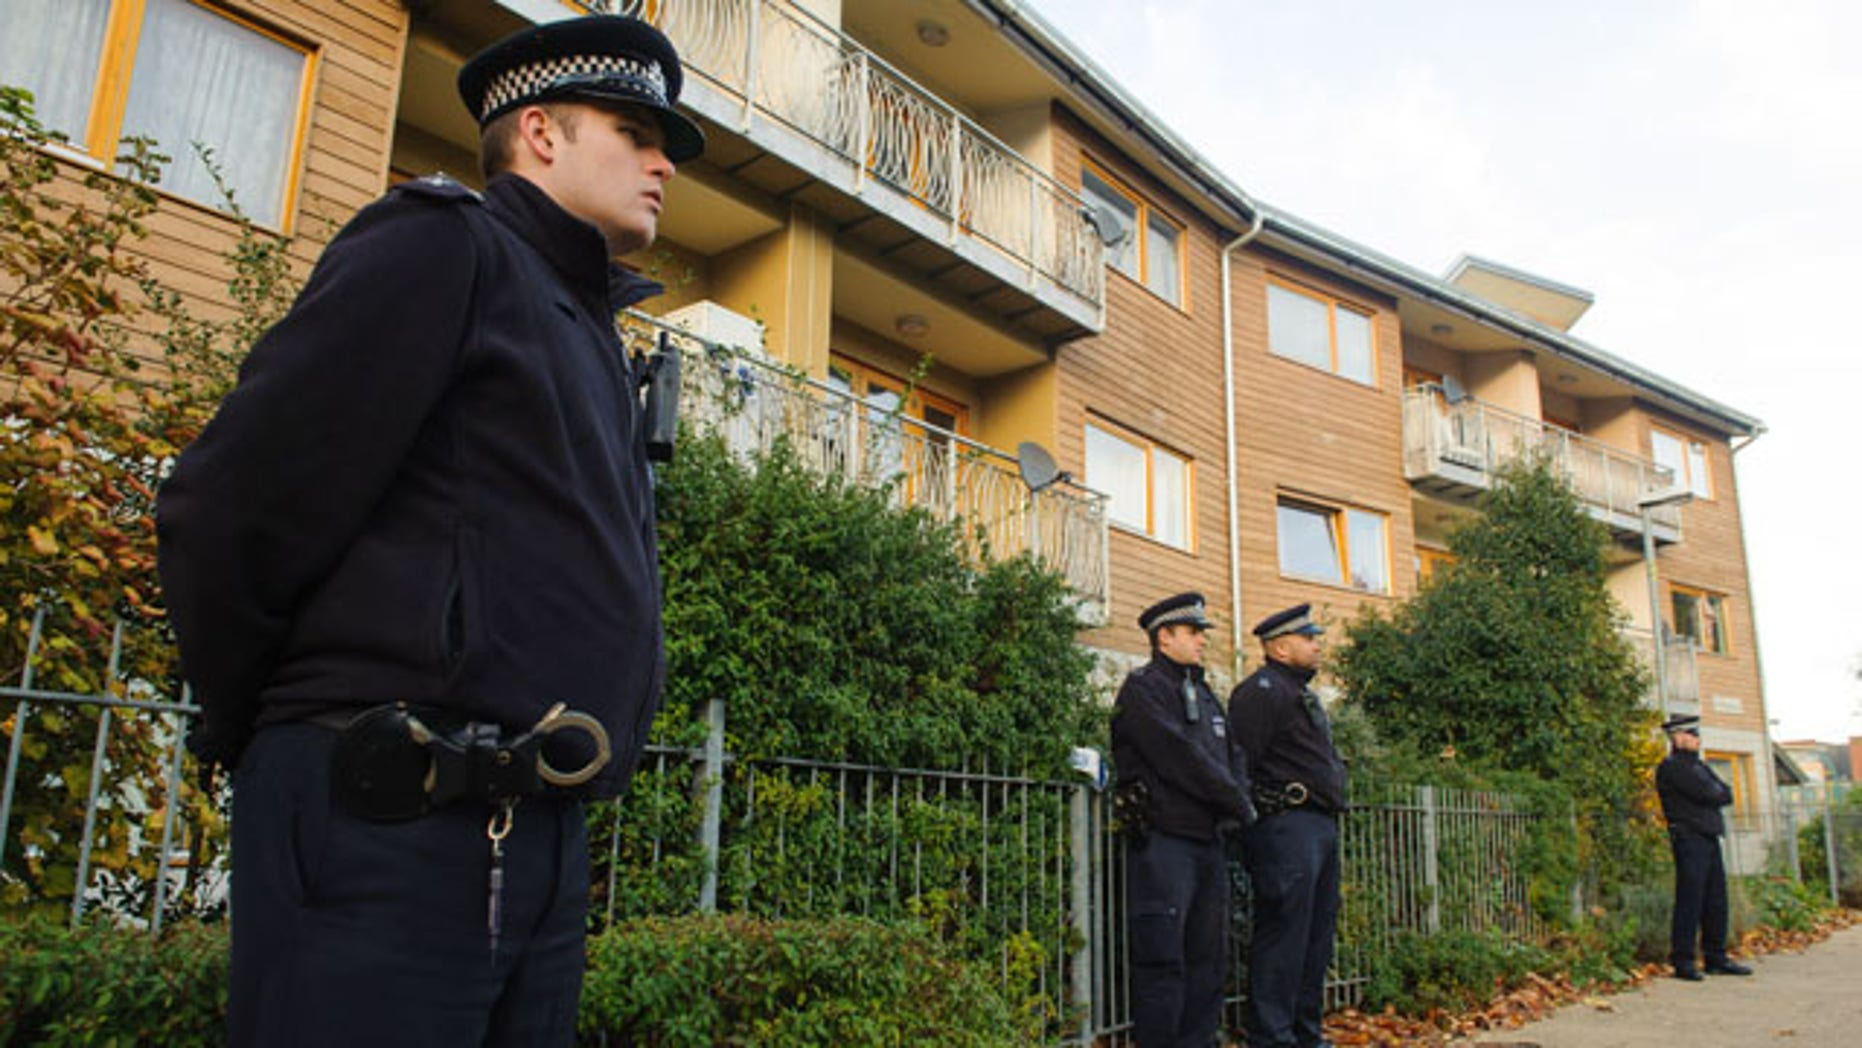 November 23, 2013: Police officers stand outside flats as police conduct house-to-house inquires in the area where three women were rescued in south London. UK police said Saturday that a collective living situation based on shared political beliefs is at the root of a major slavery case that led to the arrest of two suspects this week.